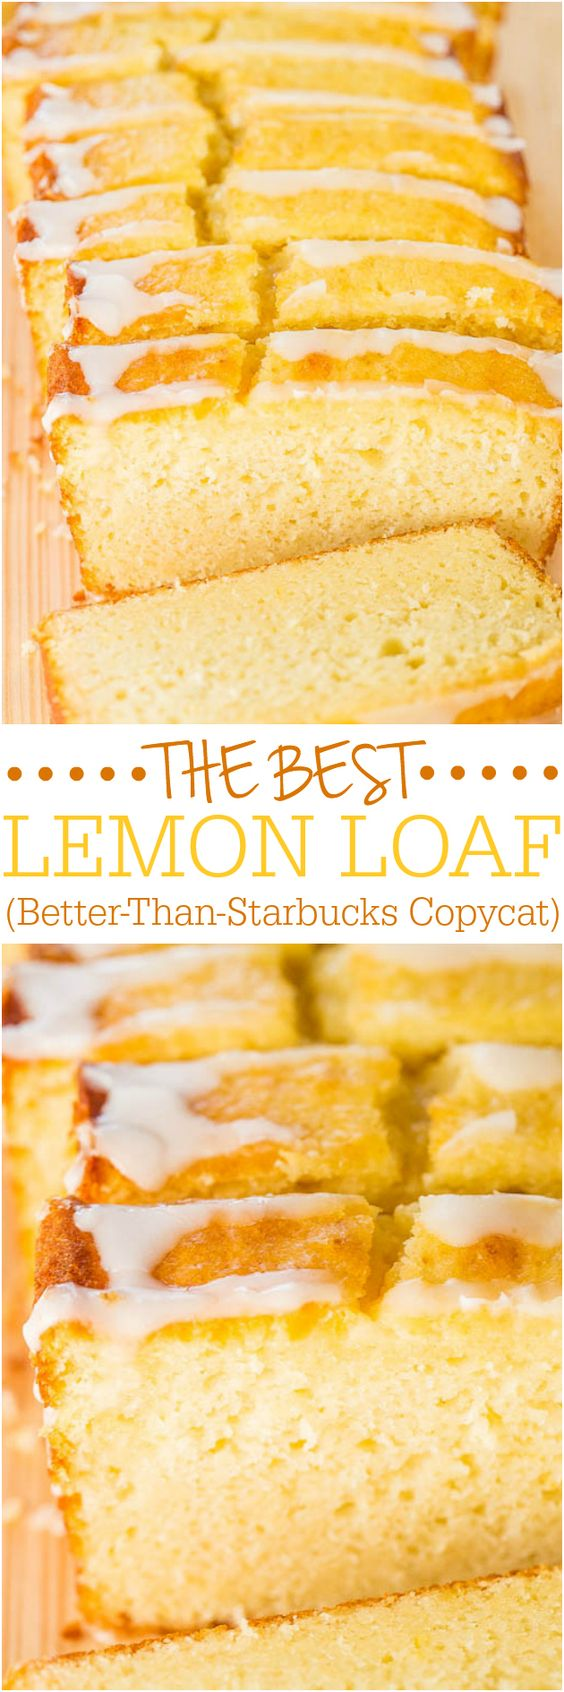 The Best Lemon Loaf (Better-Than-Starbucks Copycat) Recipe via Averie Cooks - Took years but I finally recreated it! Easy, no mixer, no cake mix, dangerously good!! Surprise Mom for Mother's Day Brunch with this! The BEST Easy Lemon Desserts and Treats Recipes - Perfect For Easter, Mother's Day Brunch, Bridal or Baby Showers and Pretty Spring and Summer Holiday Party Refreshments! #lemondesserts #lemonrecipes #easylemonrecipes #lemon #lemontreats #easterdesserts #mothersdaydesserts #springdesserts #holidaydesserts #summerdesserts